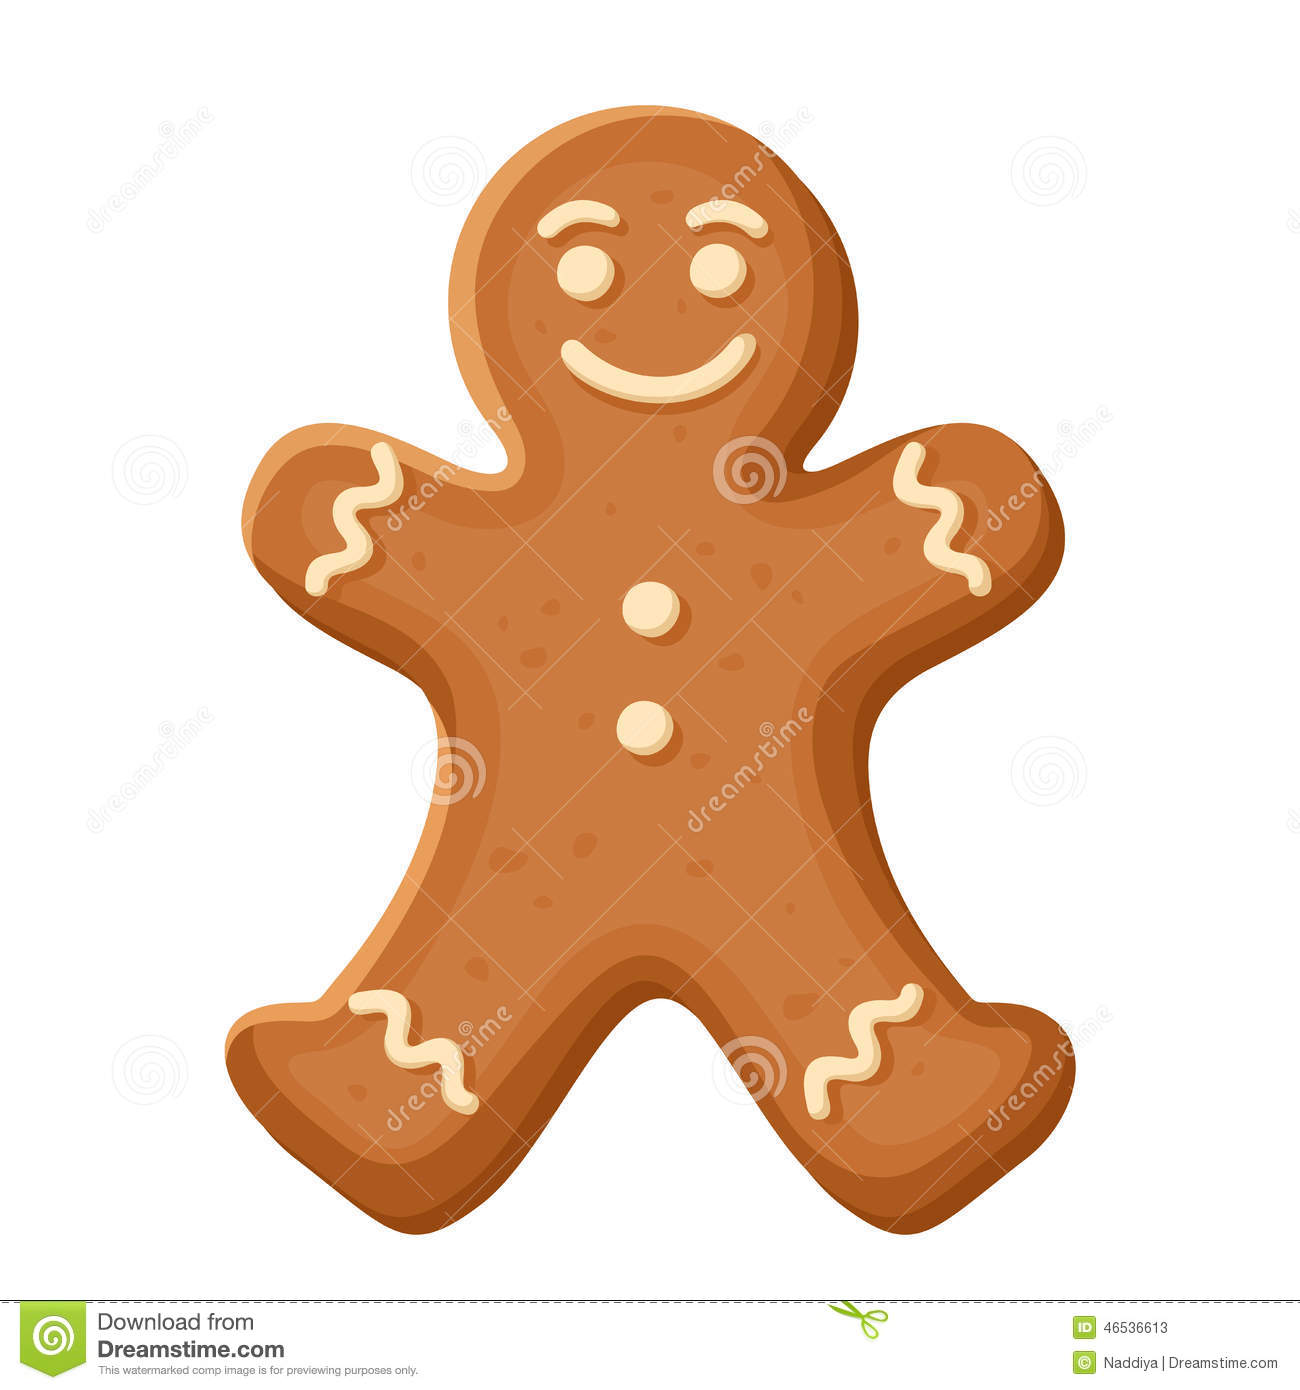 ... Christmas illustration of gingerbread man cookie isolated on white